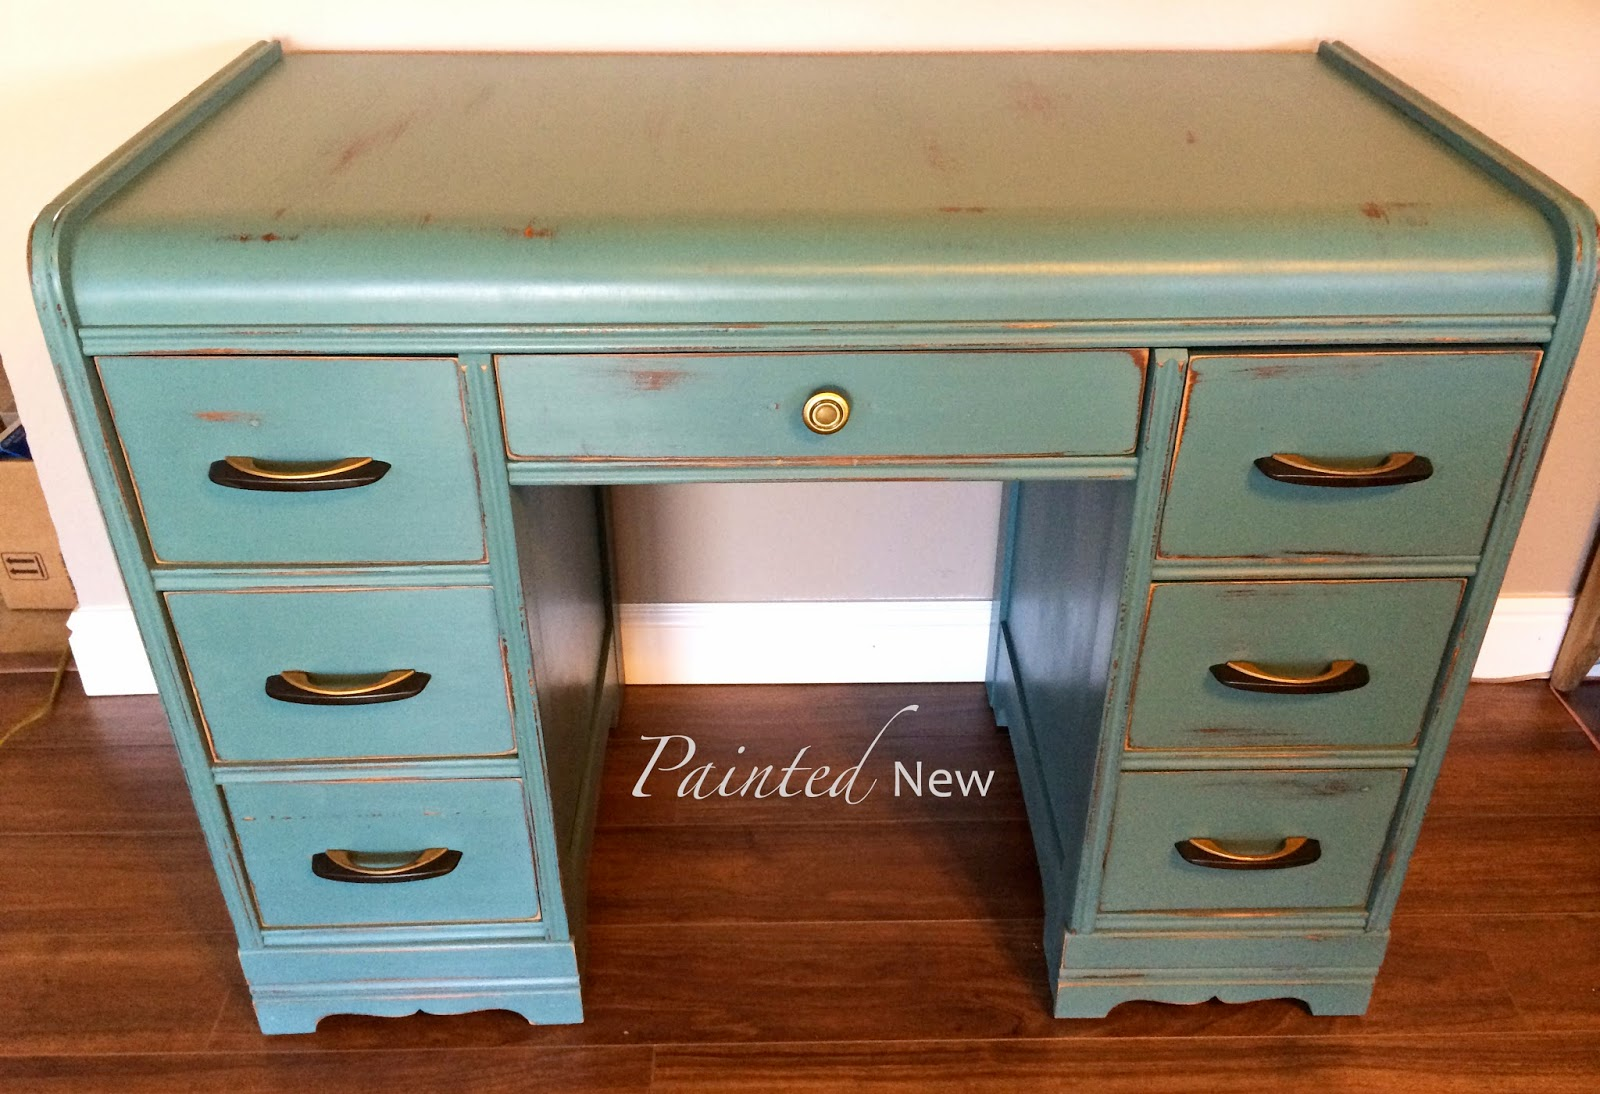 Painted New Art Deco Waterfall Desk